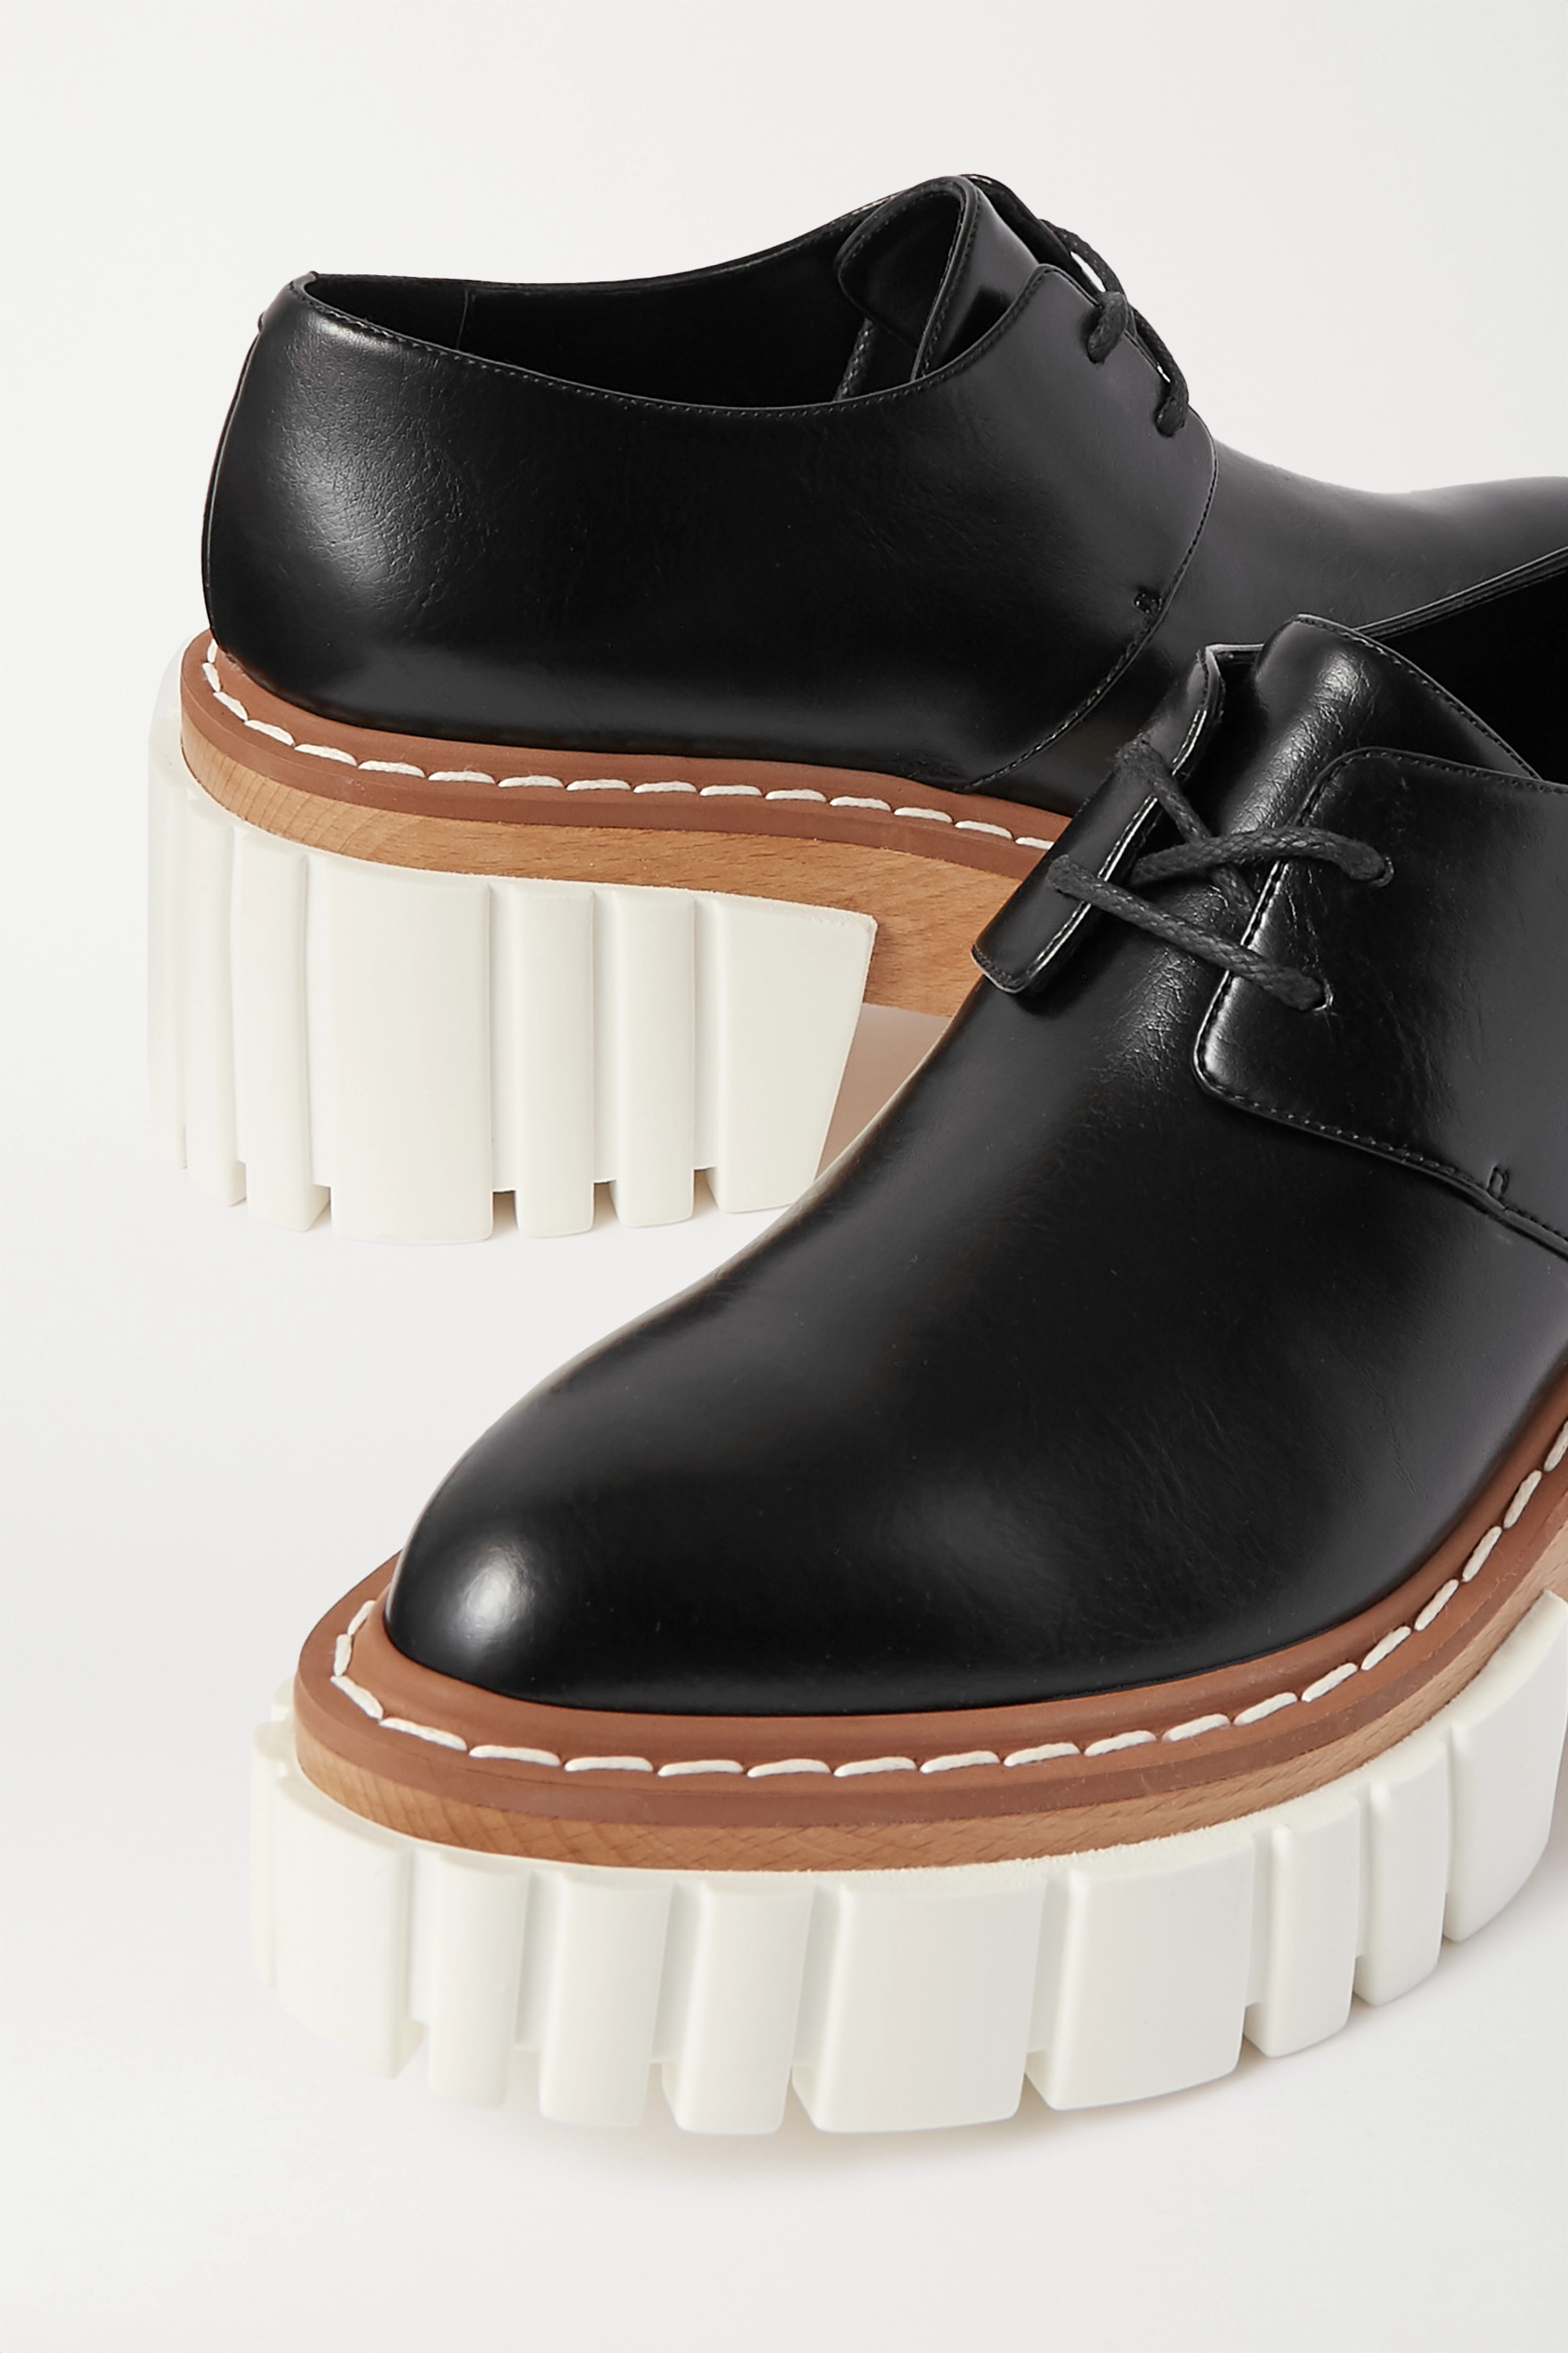 Stella McCartney Emilie vegetarian leather platform brogues